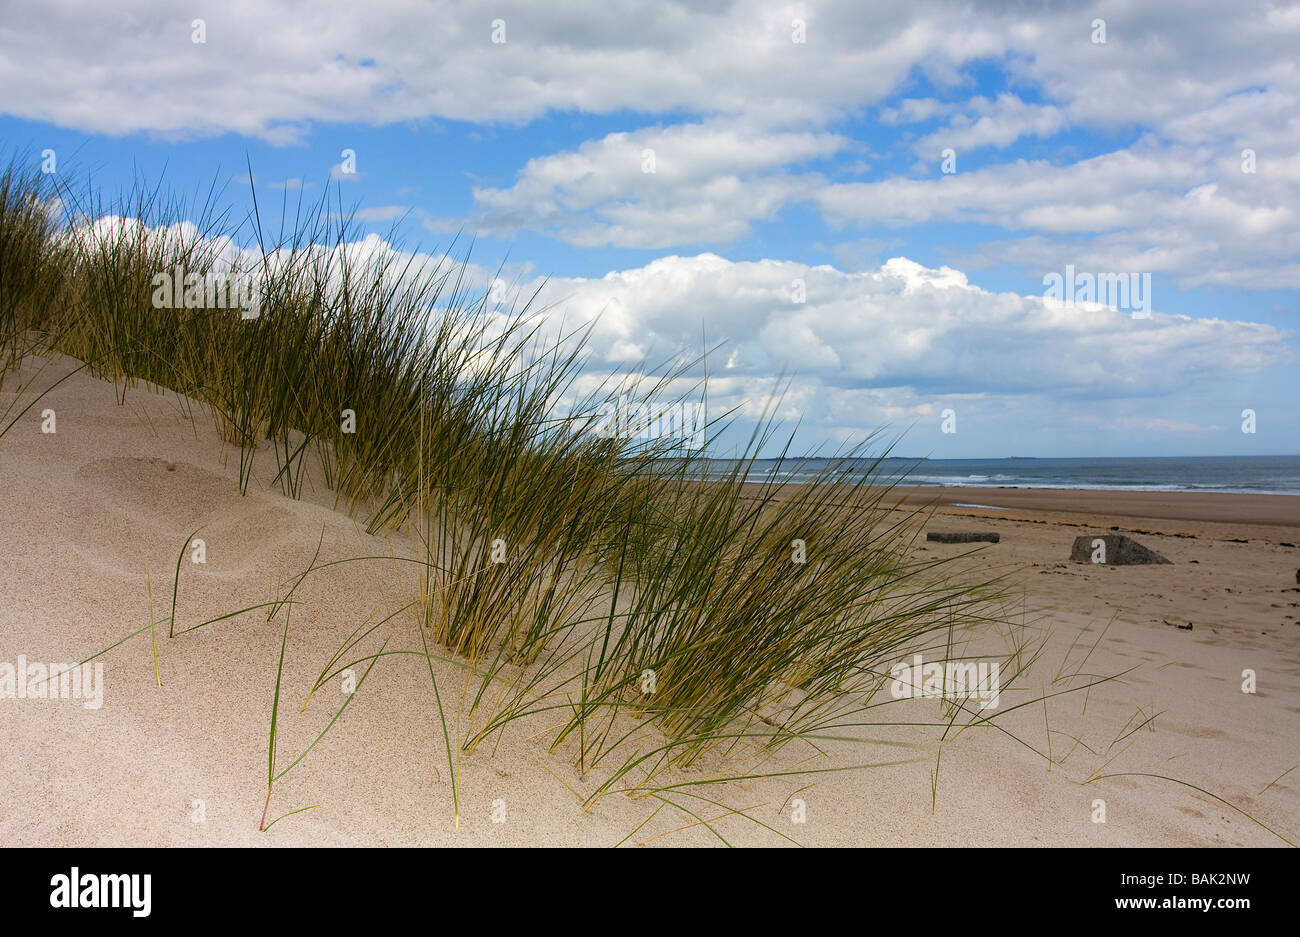 View Of Grass And Sand Dunes Cresswell Beach North East